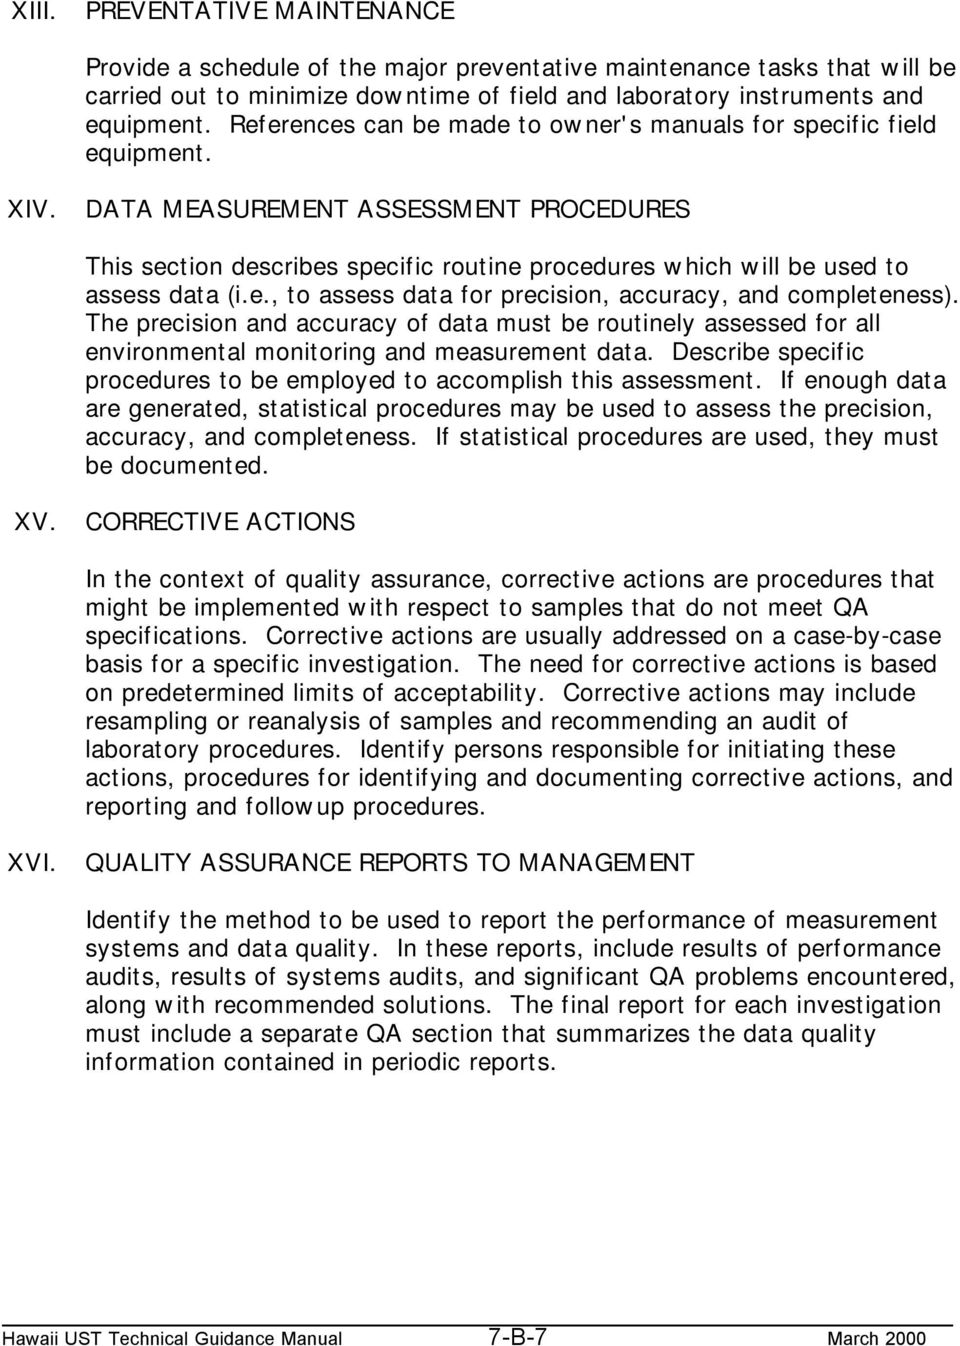 DATA MEASUREMENT ASSESSMENT PROCEDURES This section describes specific routine procedures which will be used to assess data (i.e., to assess data for precision, accuracy, and completeness).